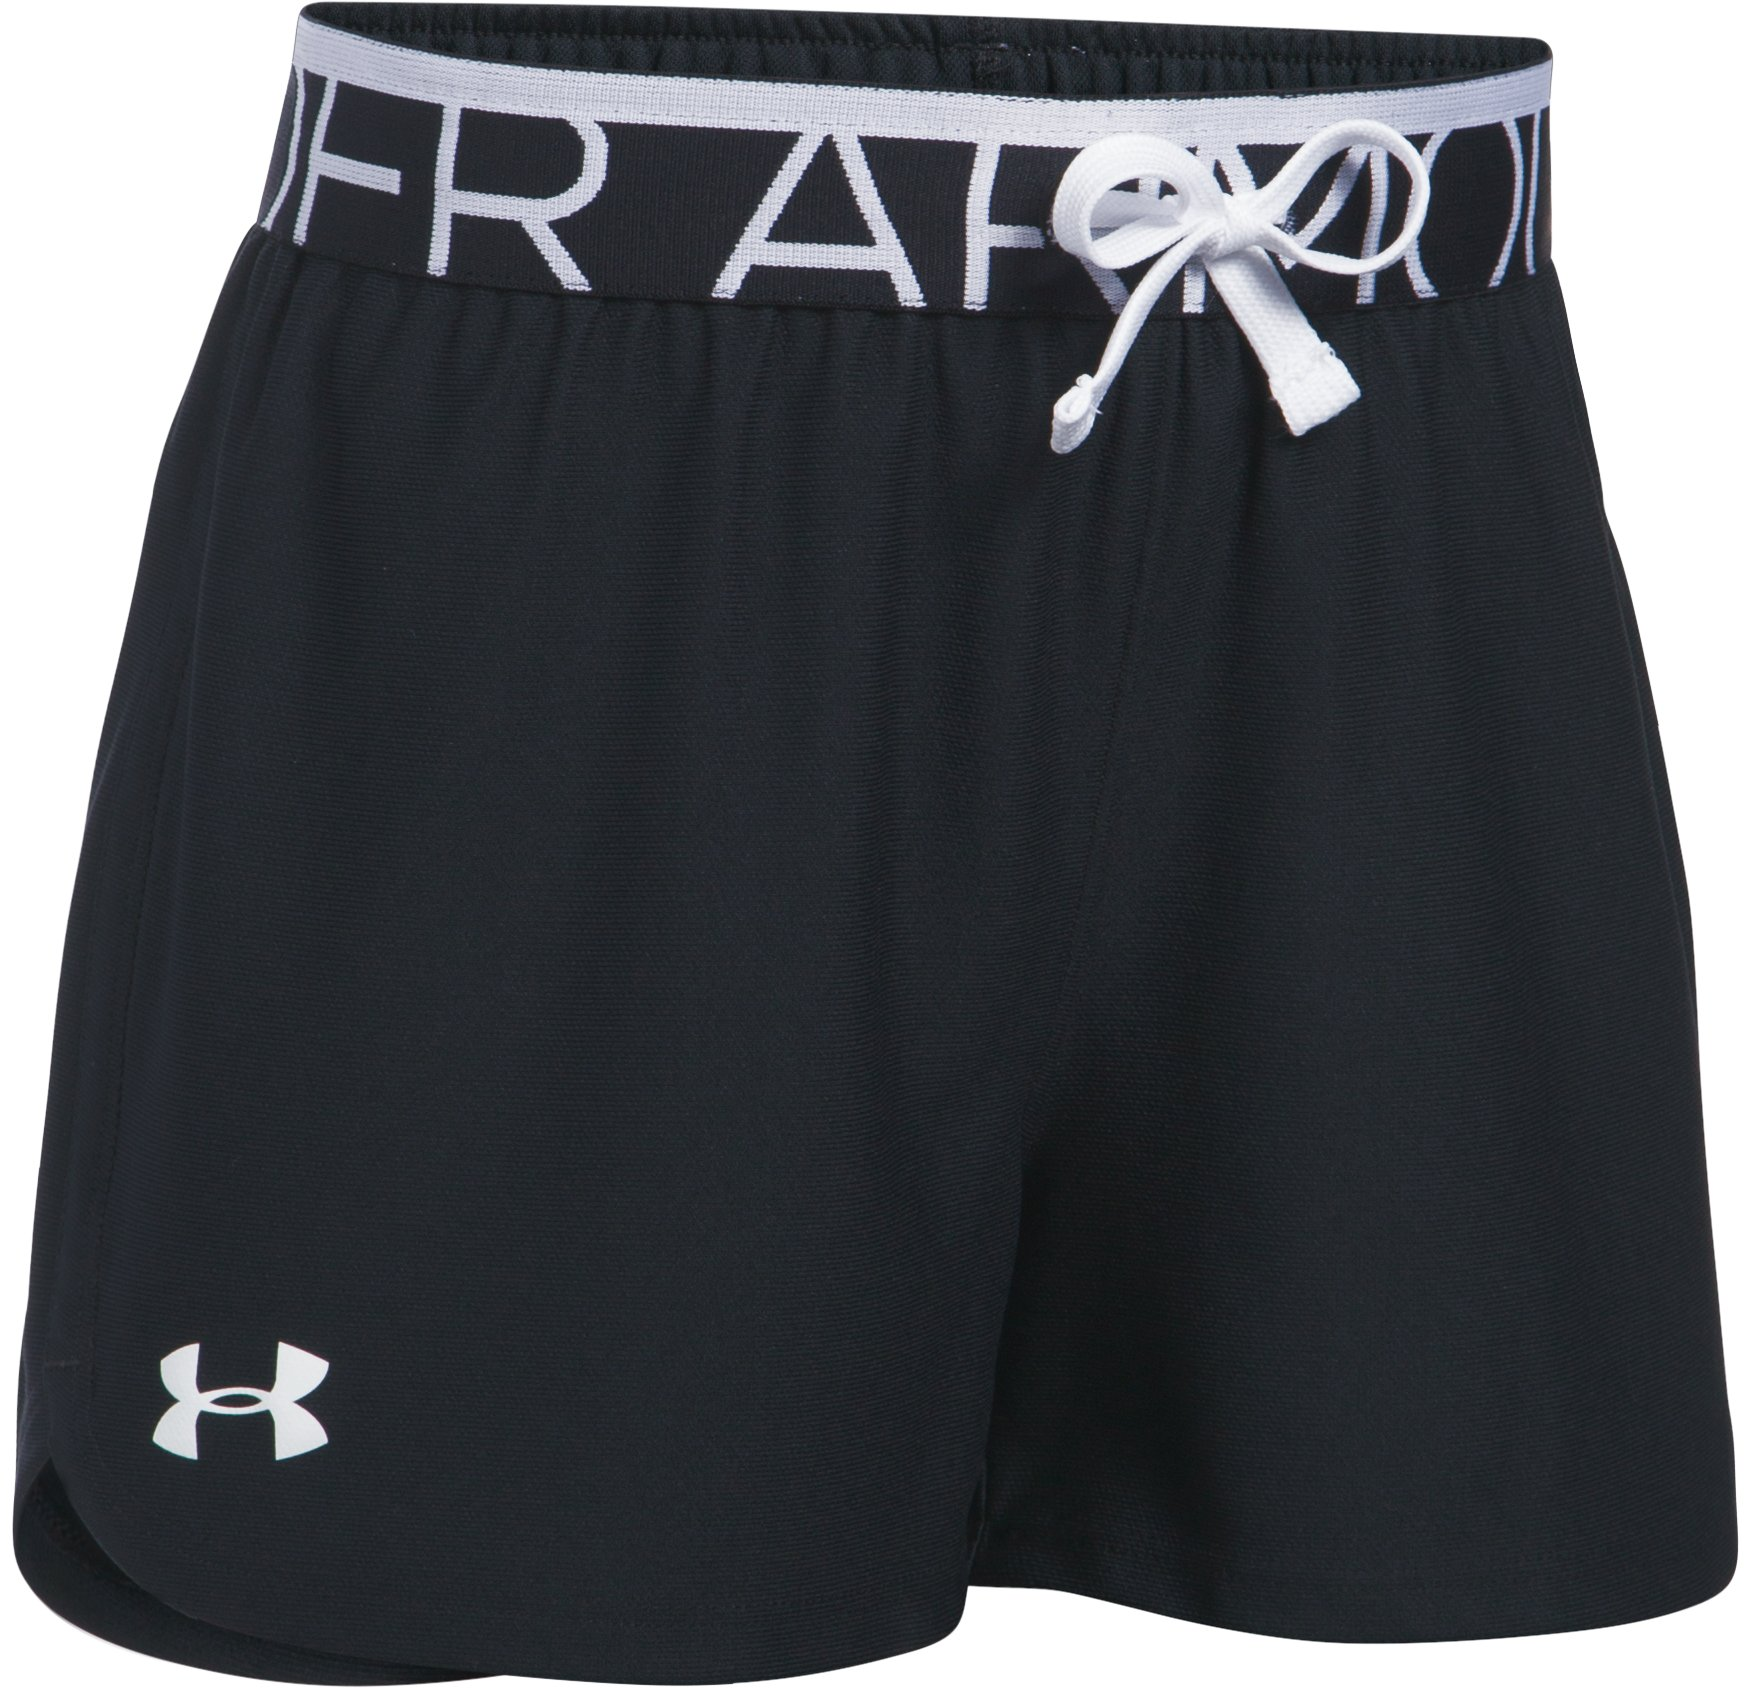 Girls' UA Play Up Shorts, Black